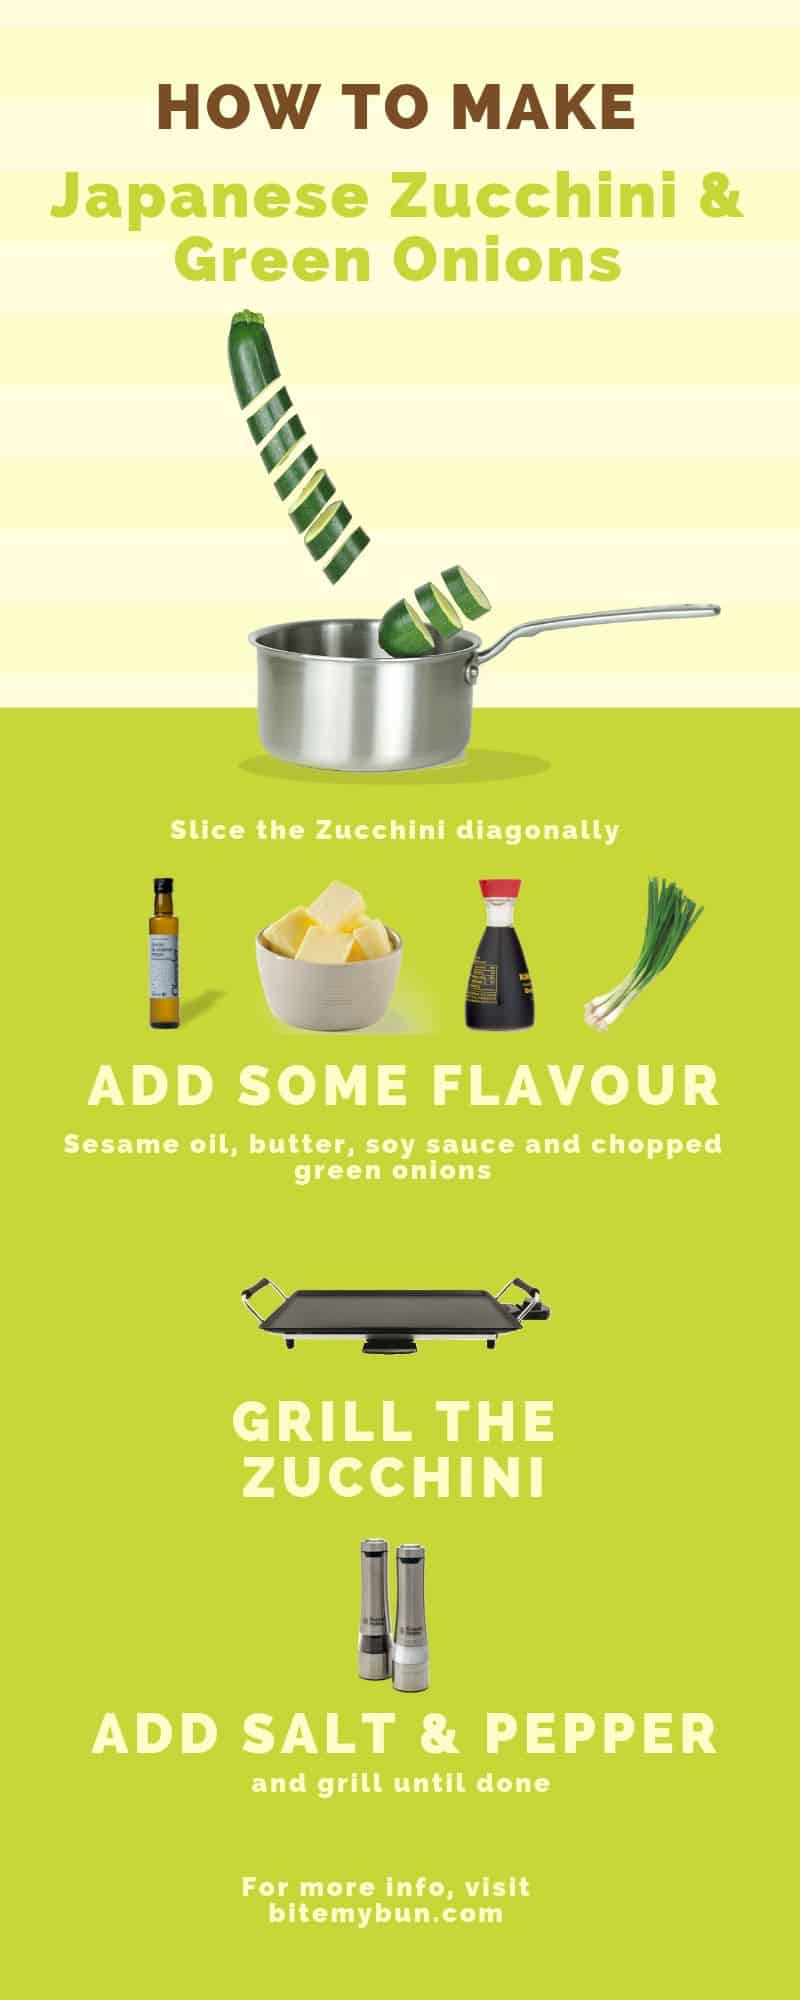 How to make Japanese Zucchini and Onions infographic